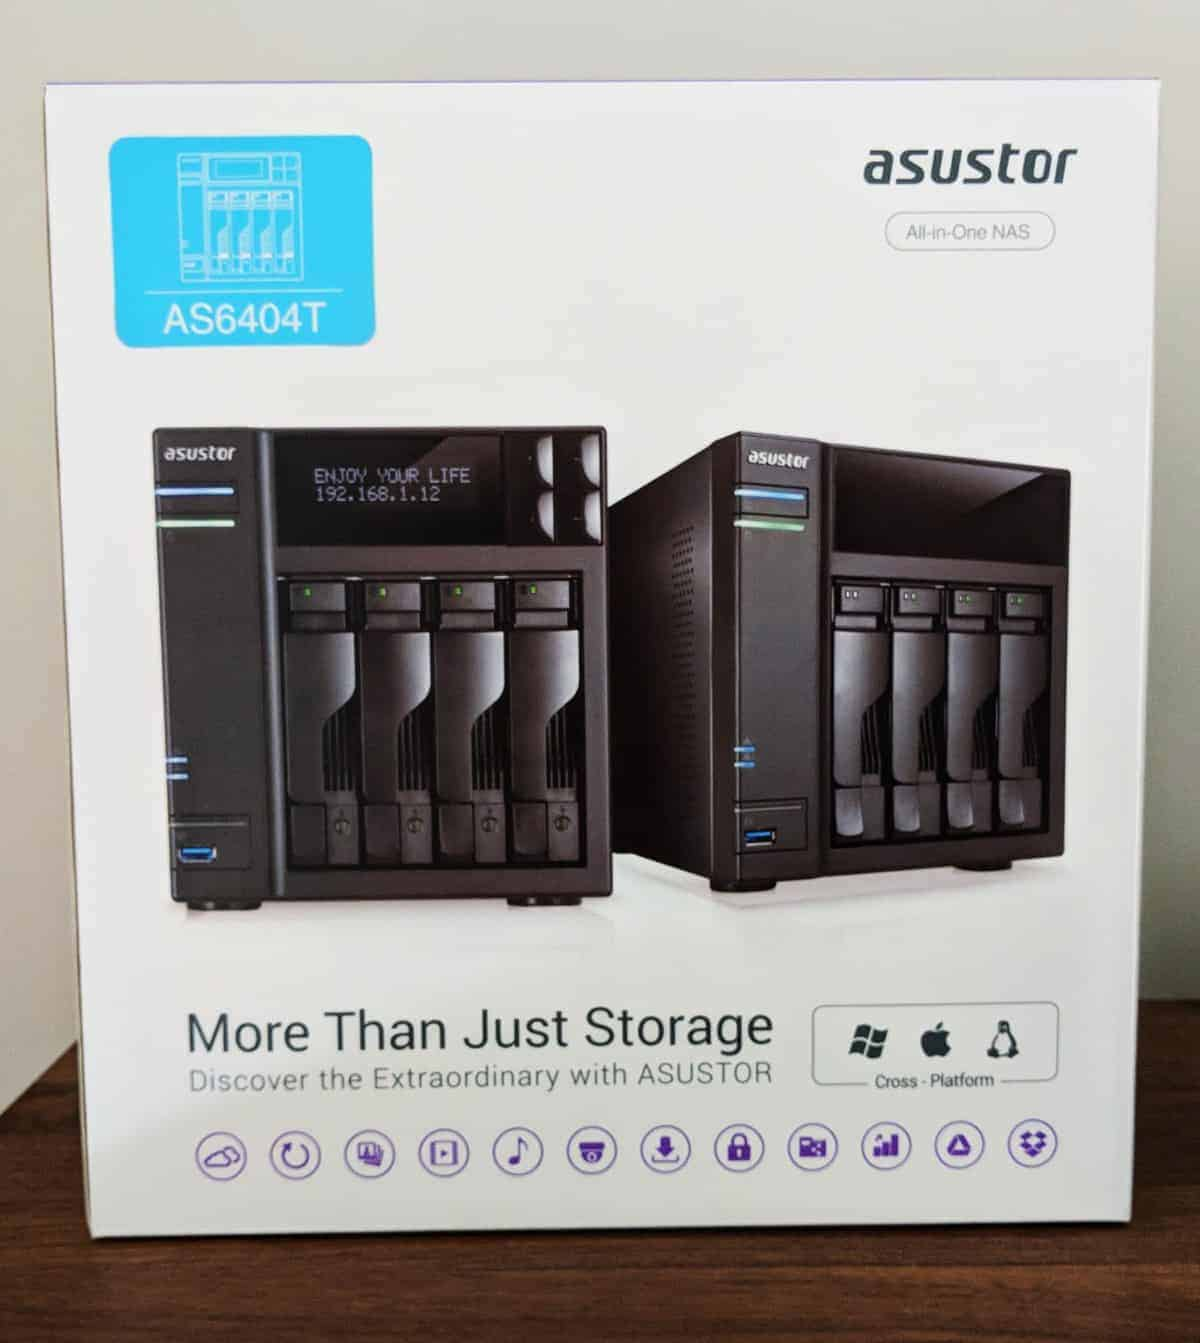 Asustor-NAS-Photos01 ASUSTOR AS6404T 4-BAY NAS Review